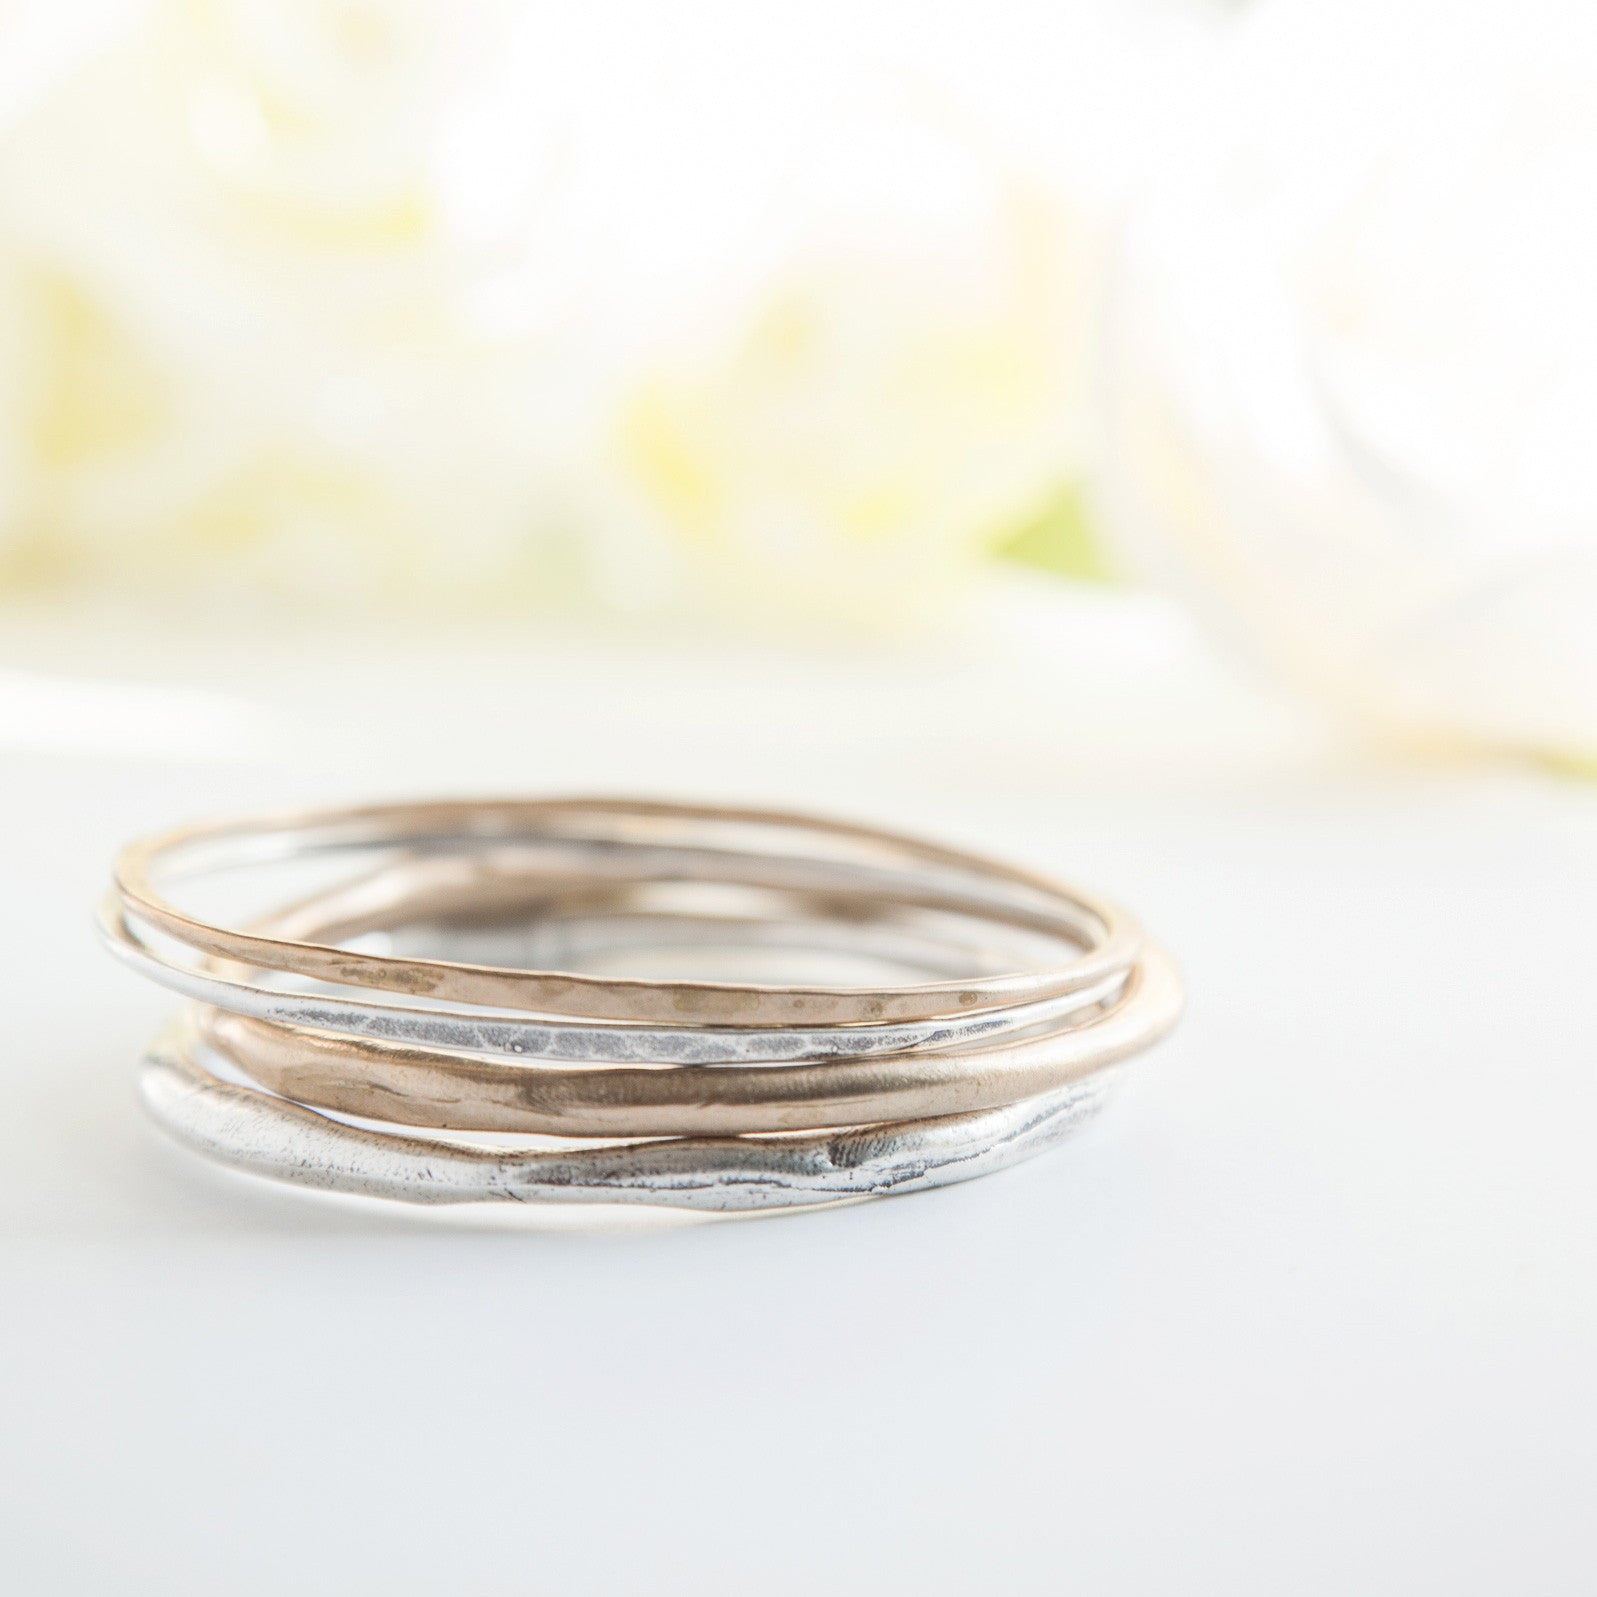 American-Jewelry-Handcrafted-Oval-Bangles-bracelet-silver-bronze